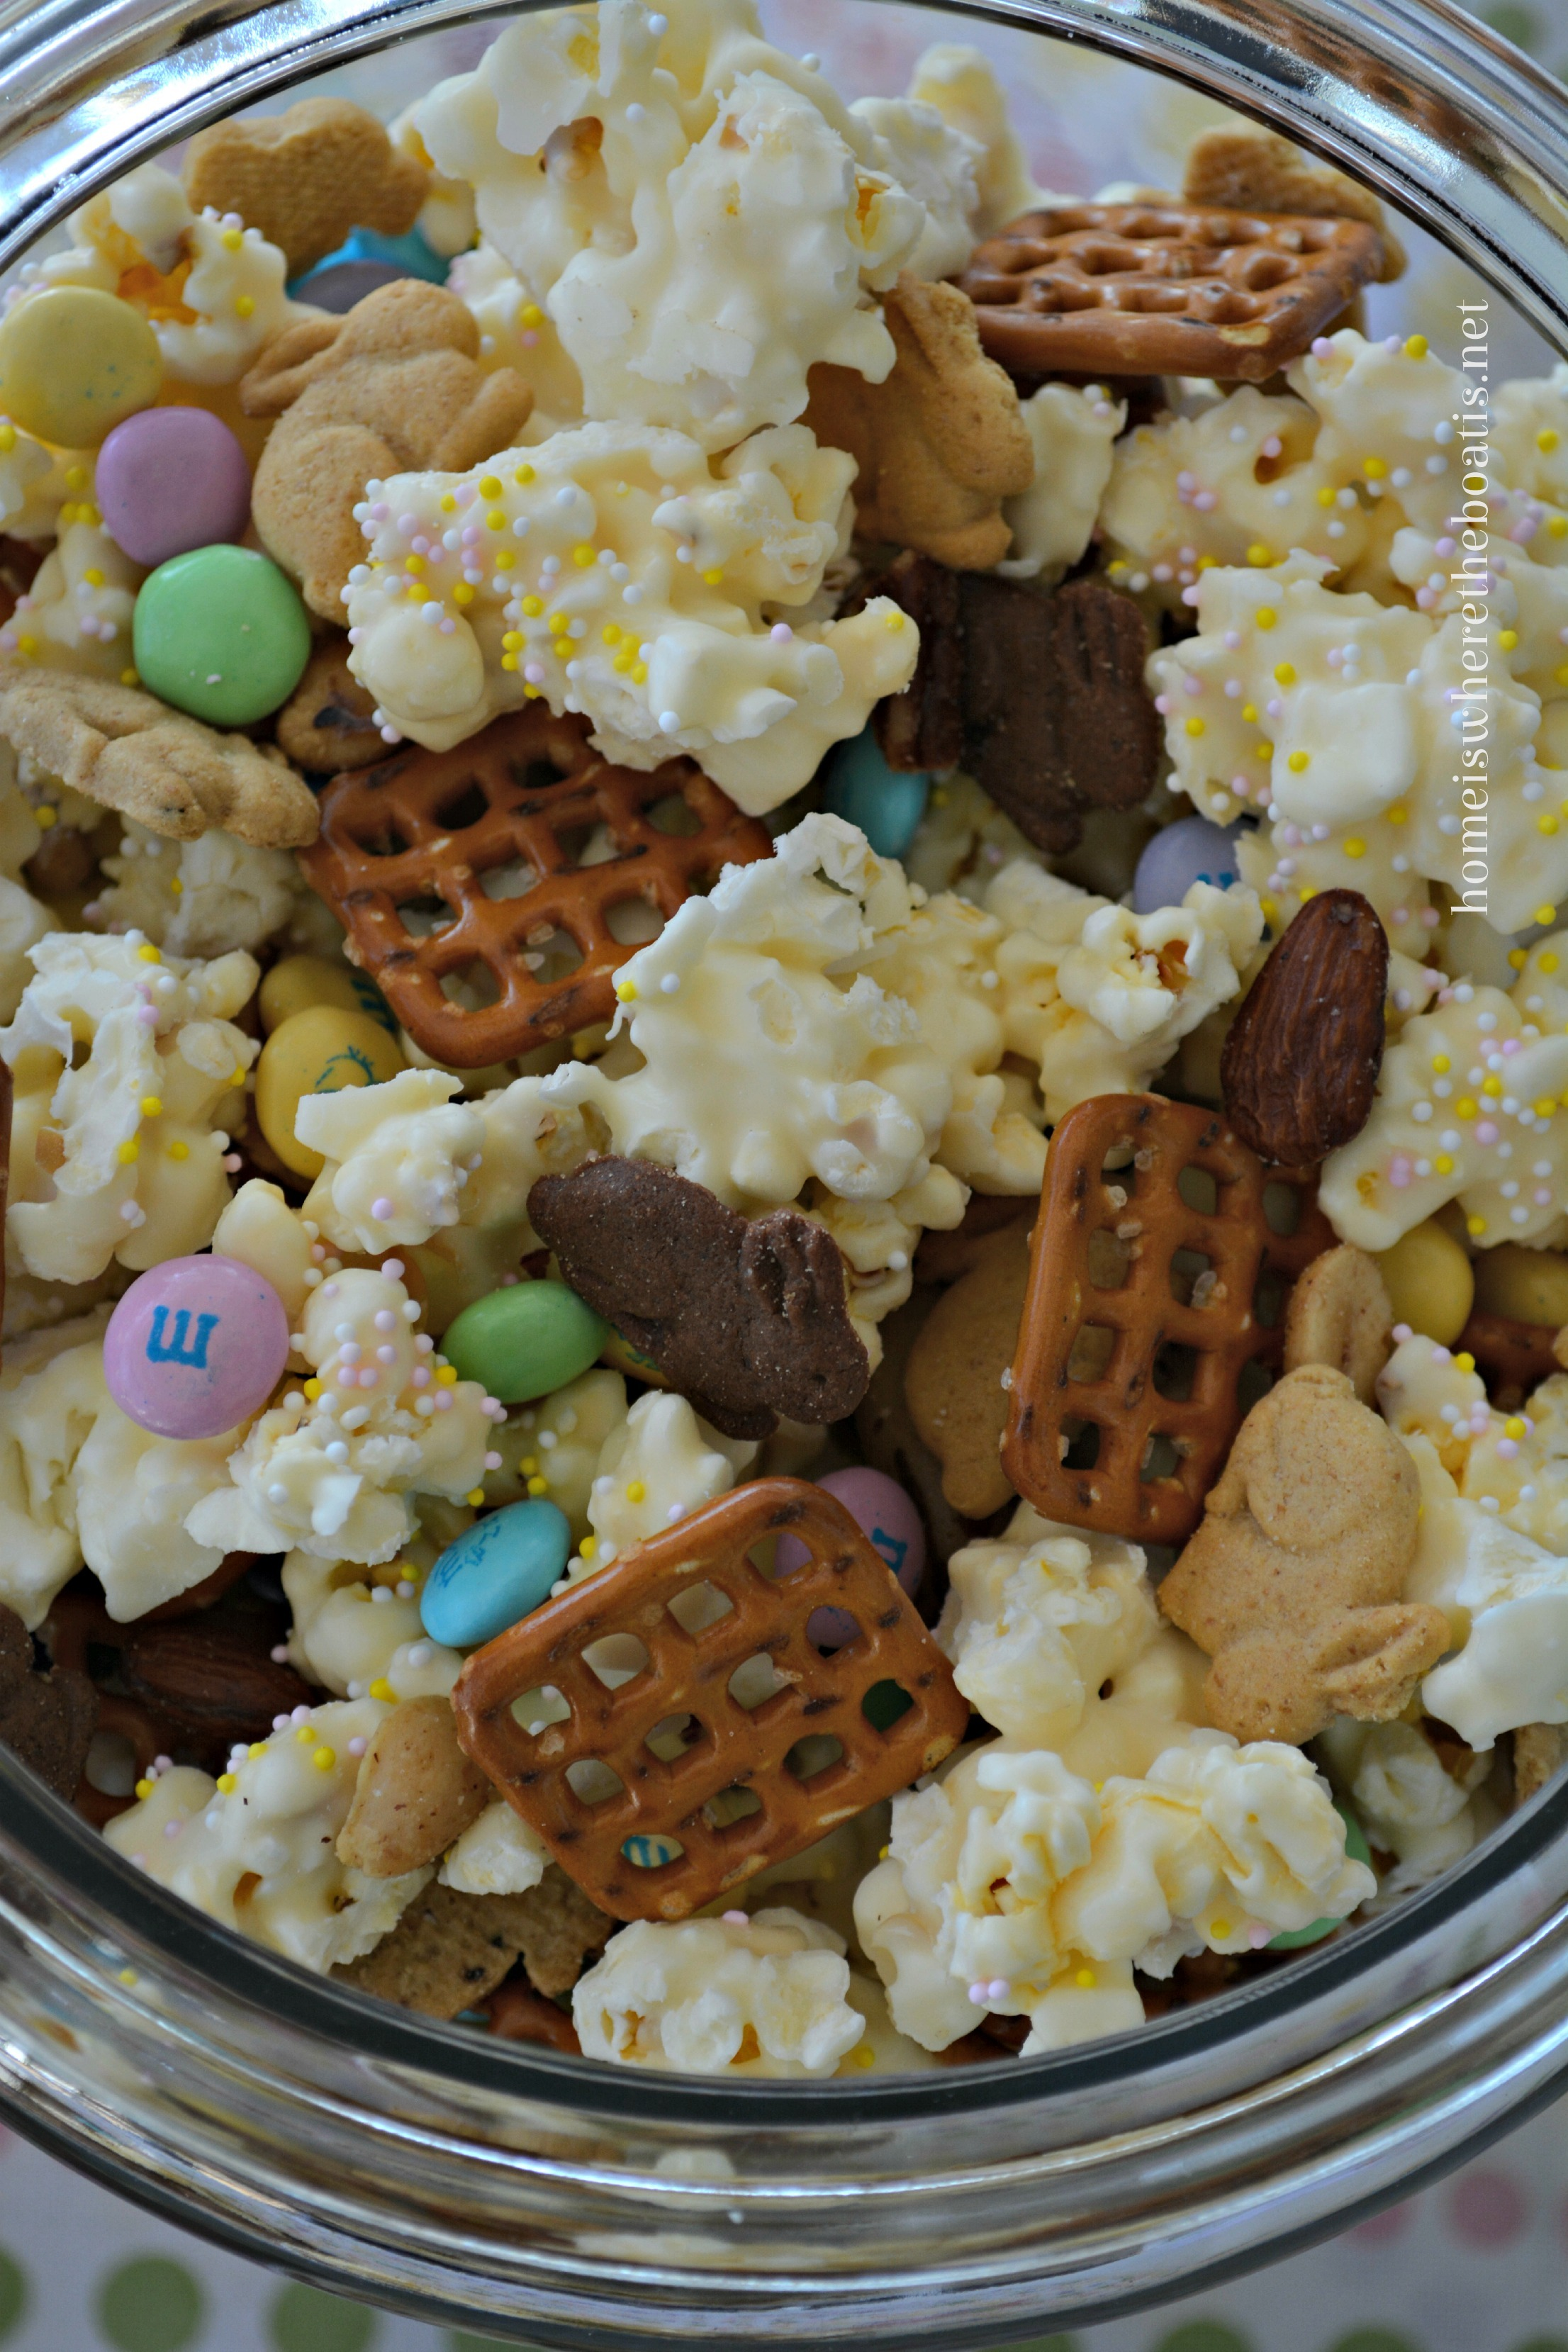 Sprinkle Some Easter Or Spring Colored Nonpareils On The White  Chocolate Coated Popcorn While The Candy Coating Is Still Warm.